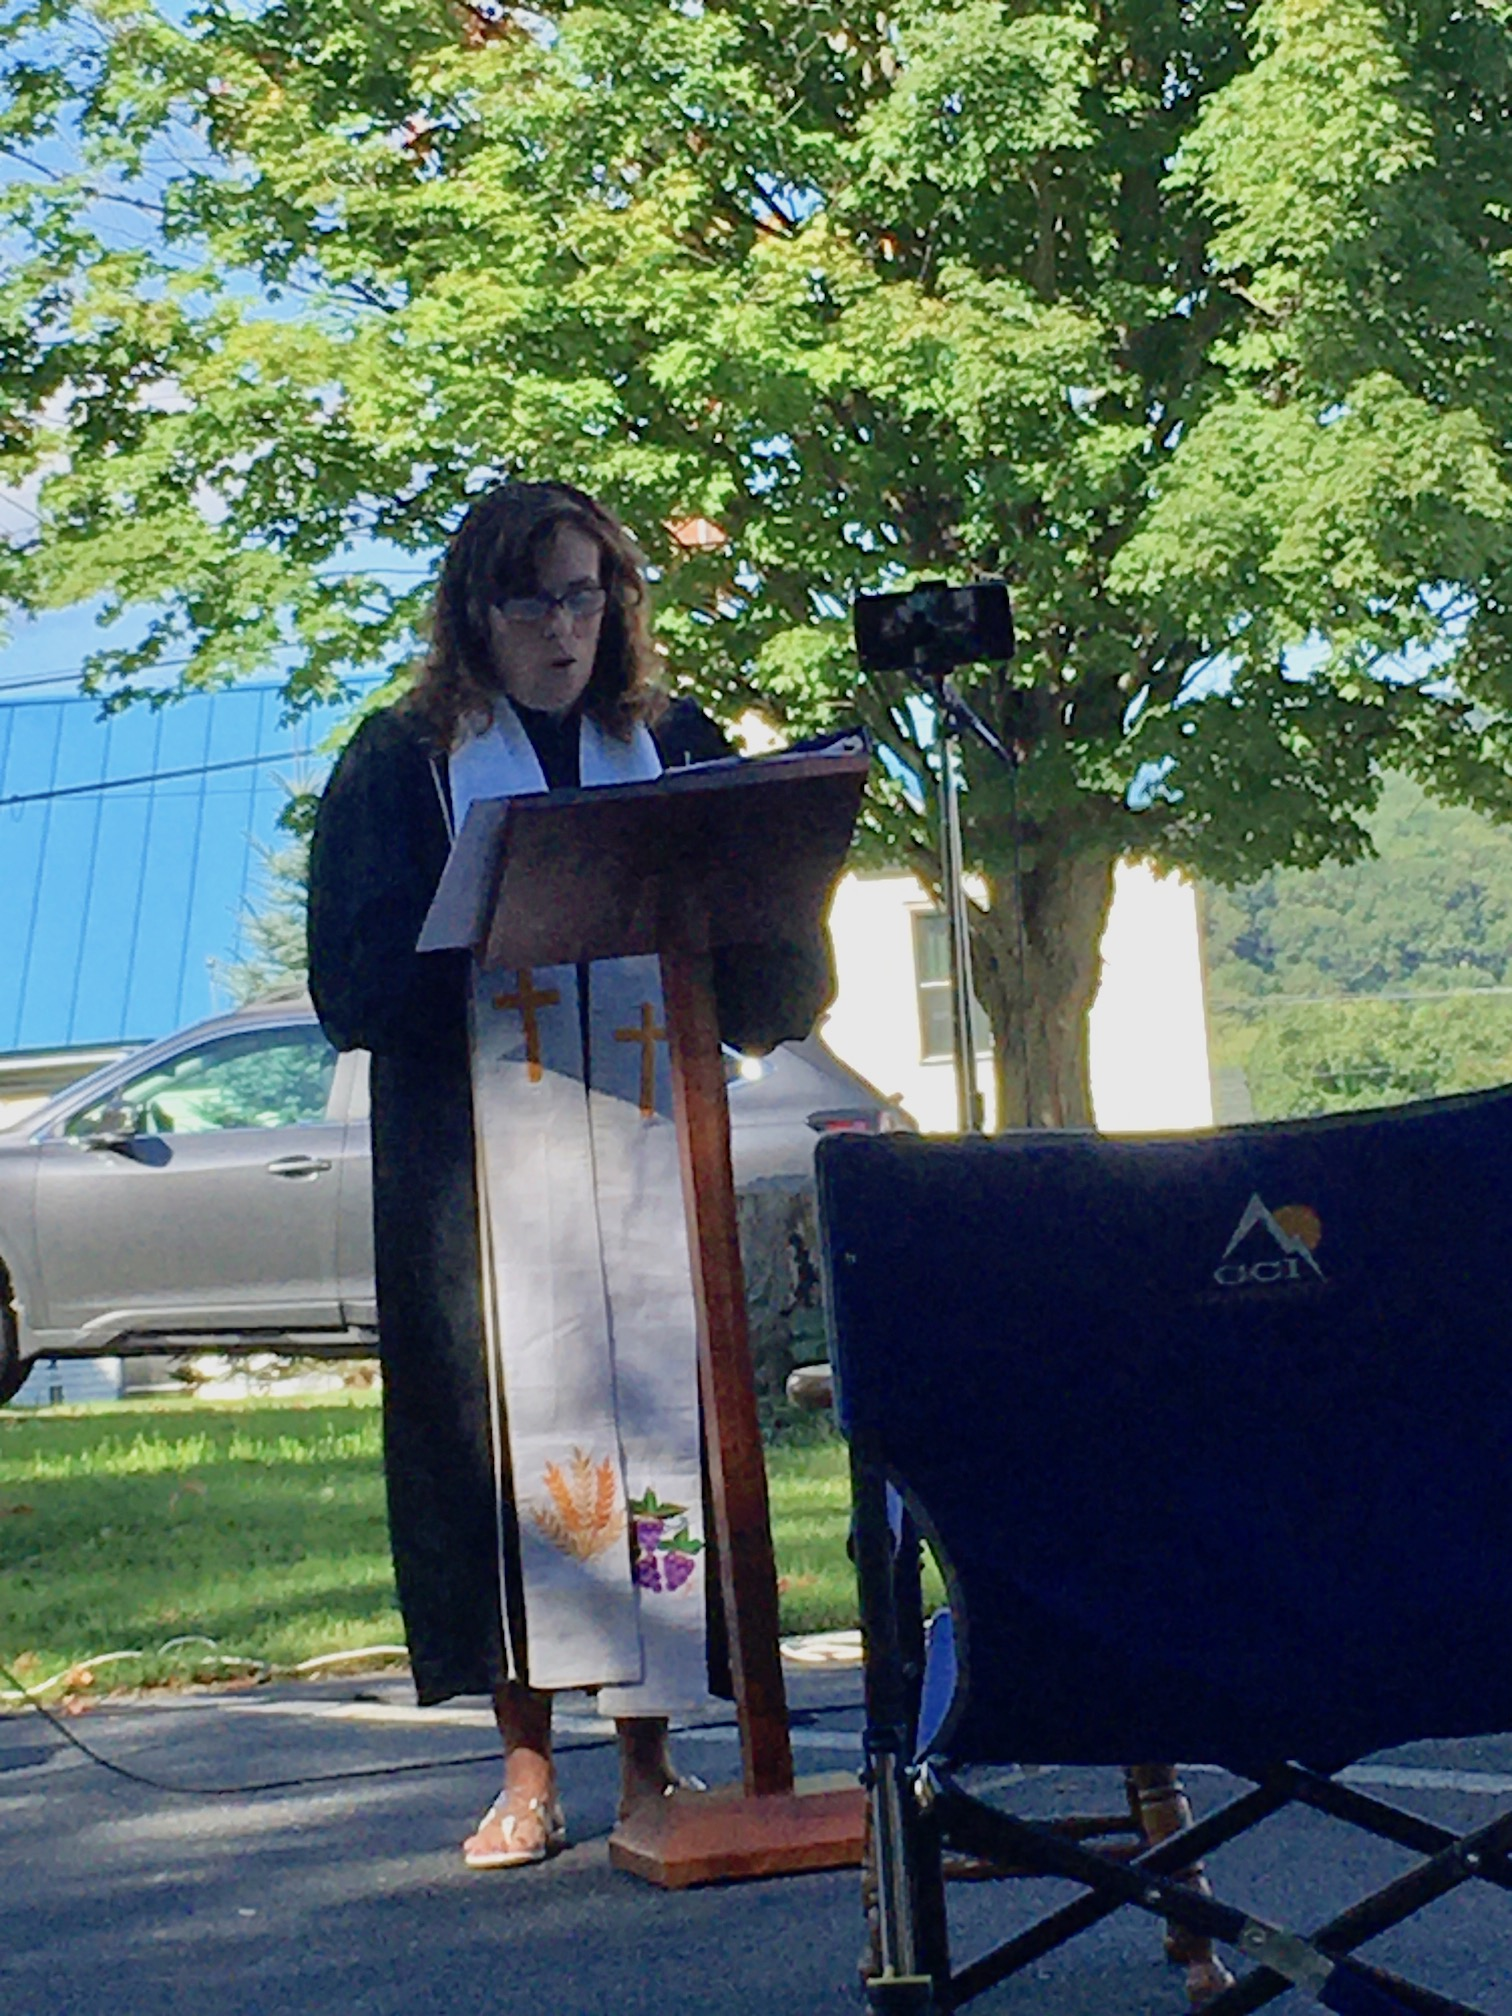 Rev. Kirsty Celebrates Parking Lot Worship